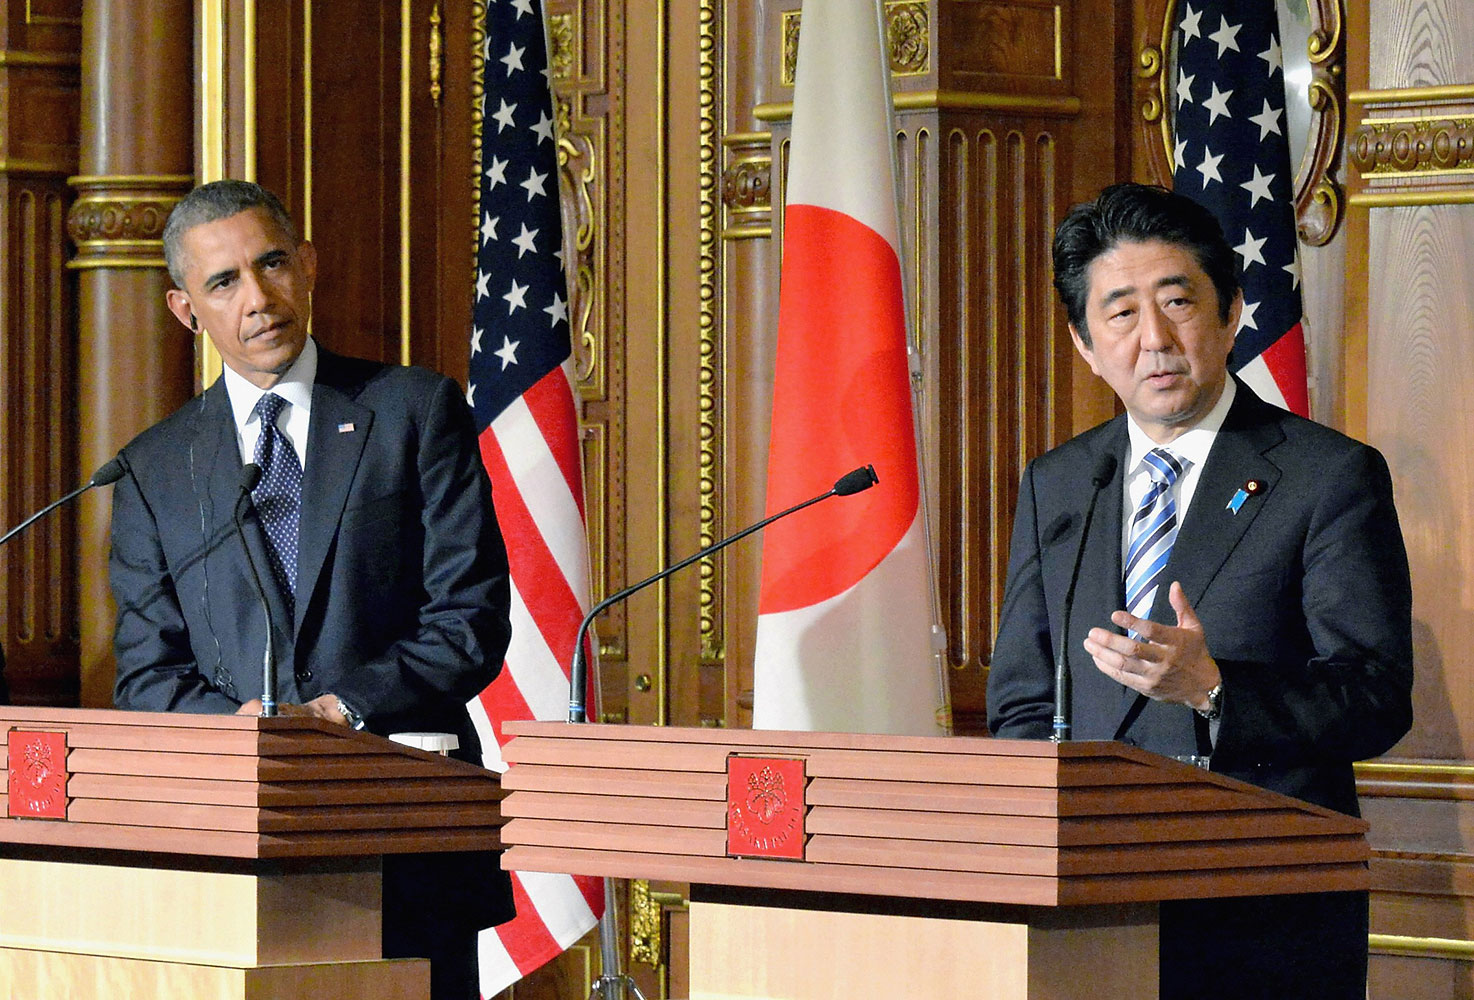 President Barack Obama and Prime Minister of Japan Shinzo Abe attend a joint news conference after their meeting at the State Guest House on April 24, 2014 in Tokyo.